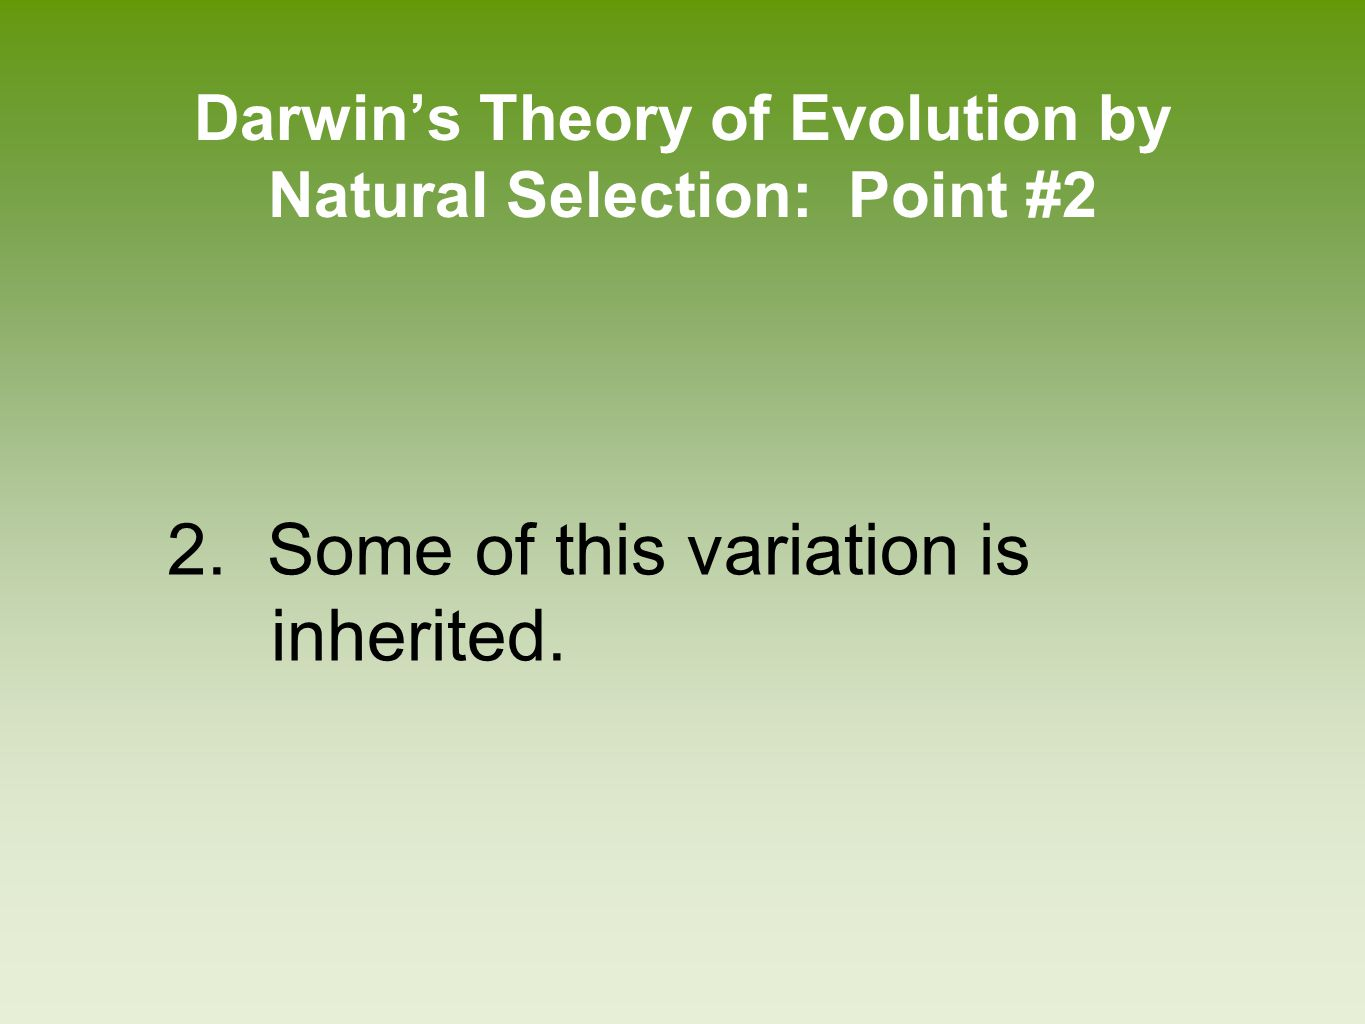 Darwin's Theory of Evolution by Natural Selection: Point #2